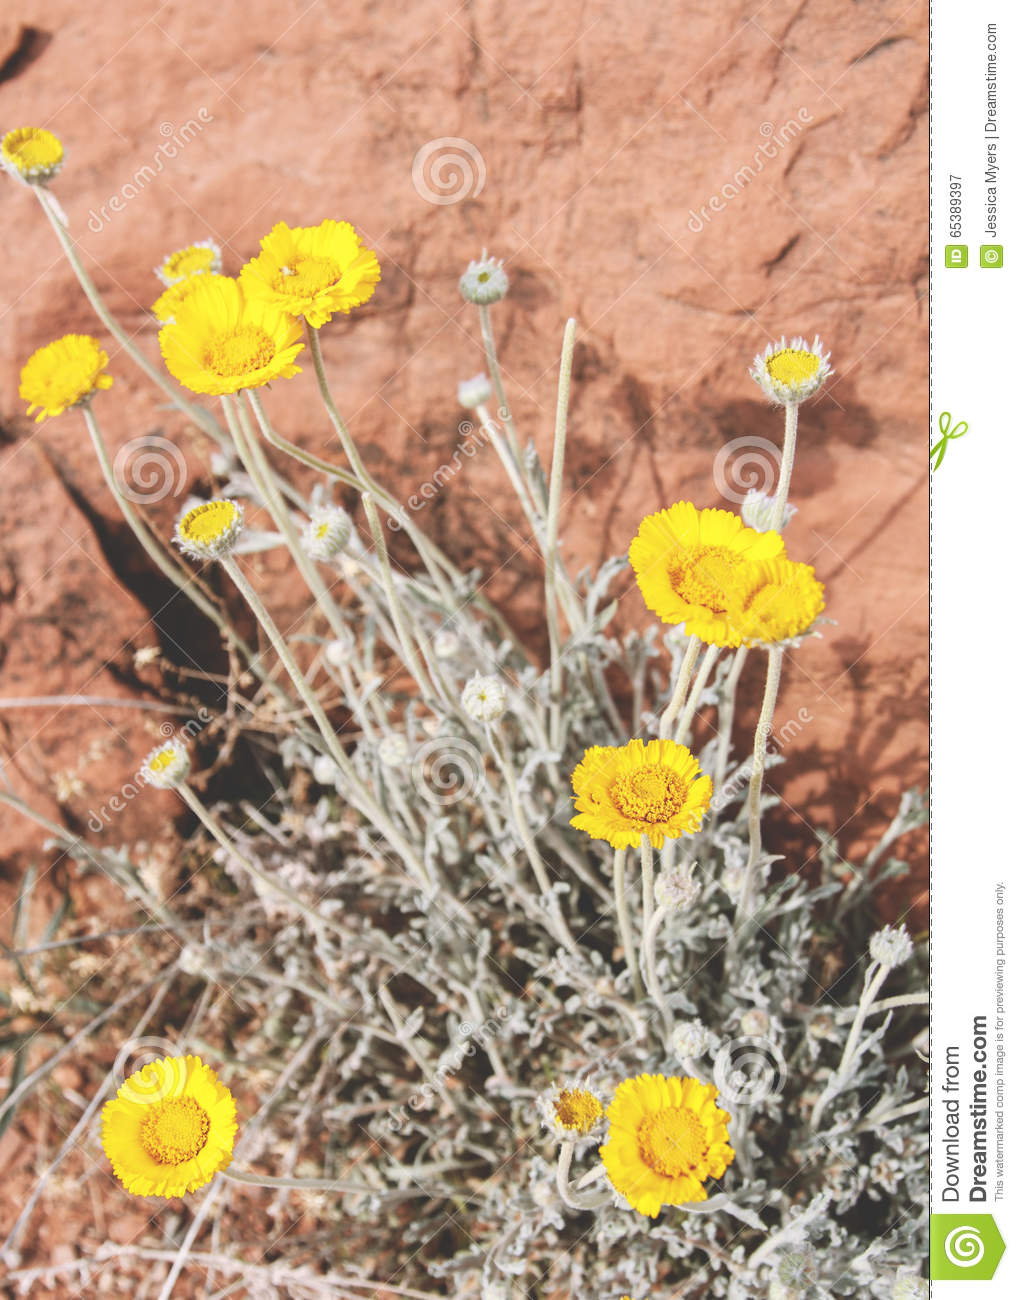 Desert Flowers Stock Image Image Of Flowers Desert 65389397